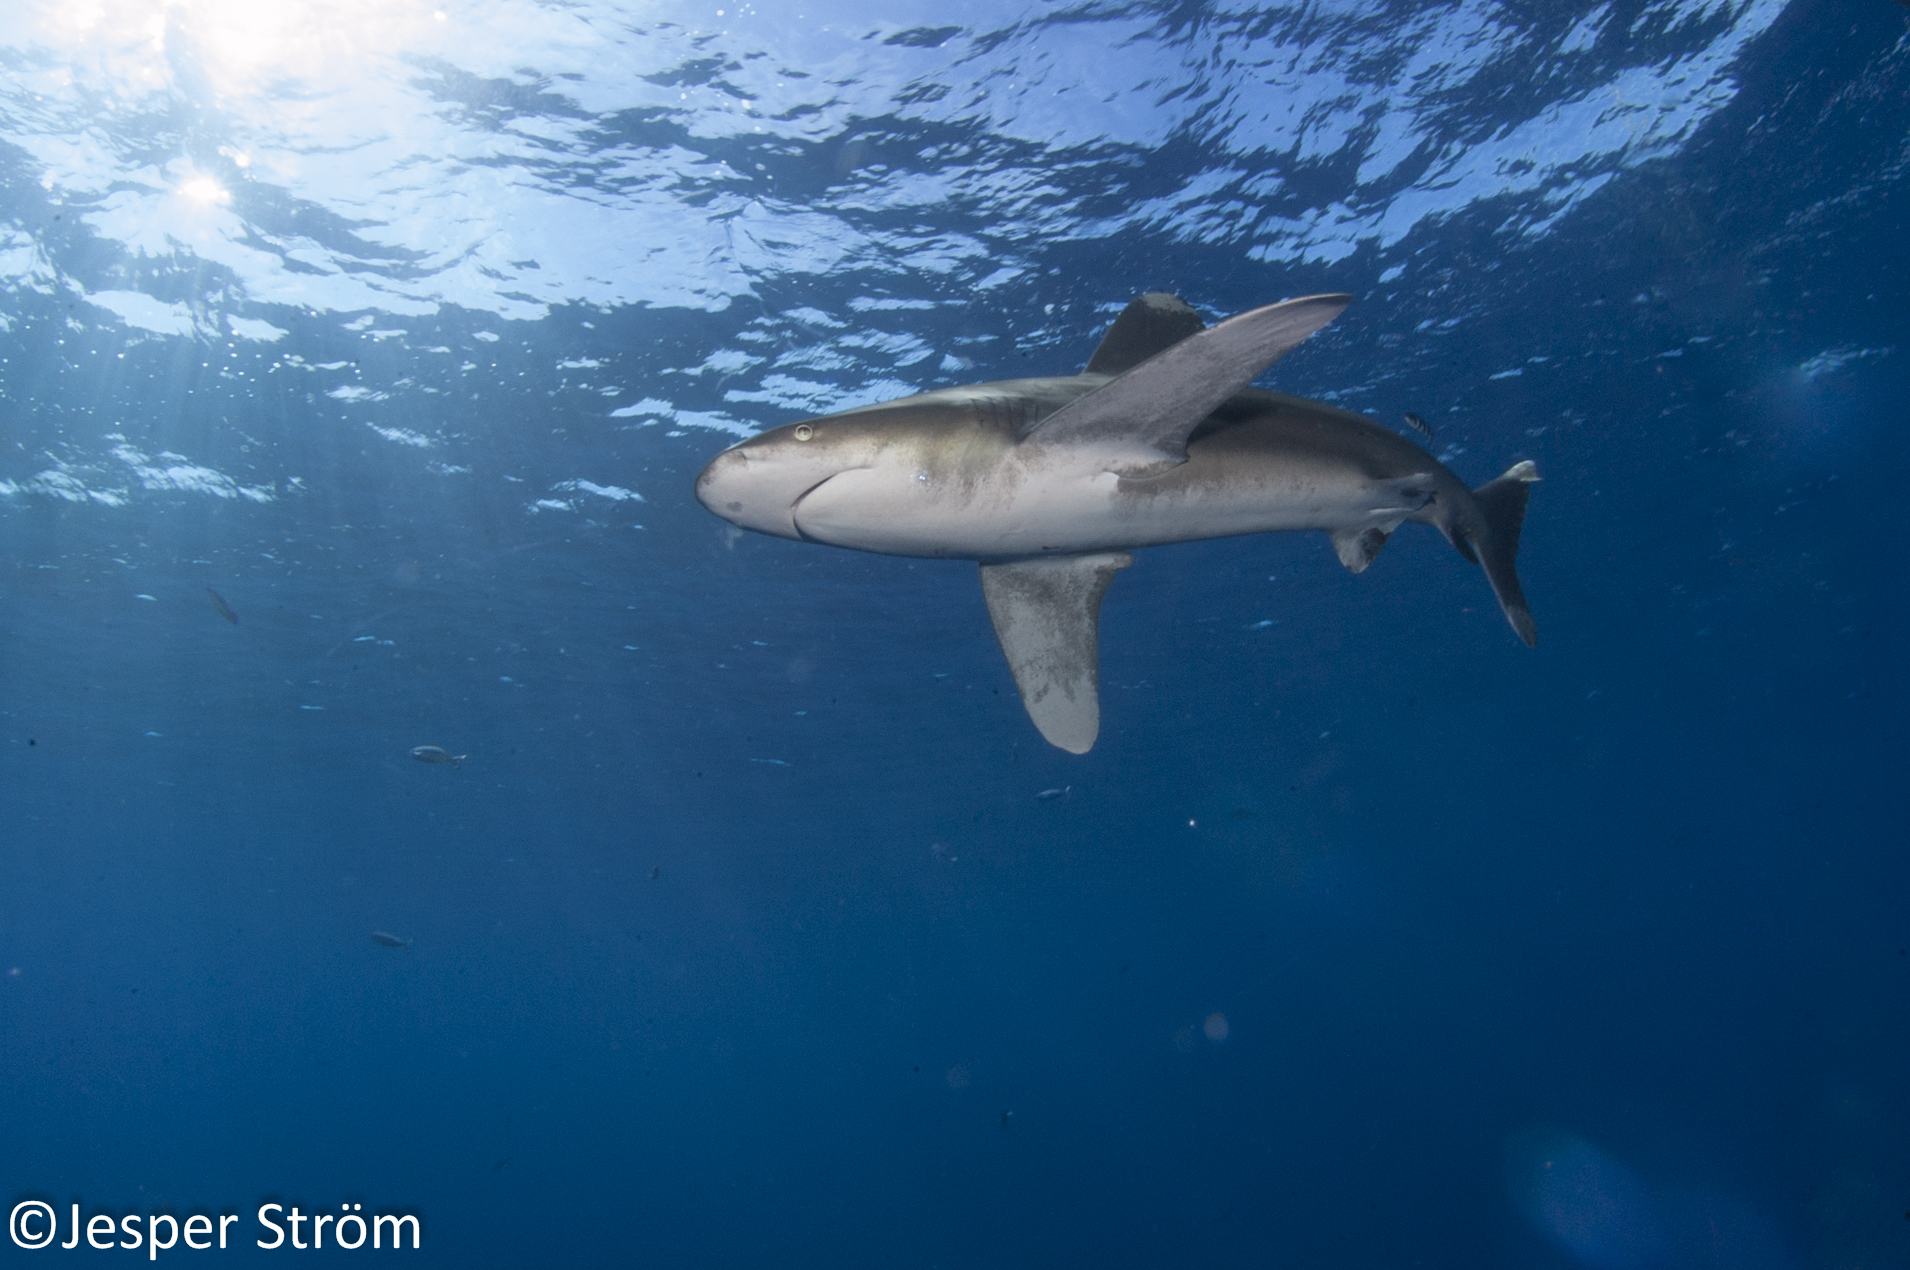 Just simply magnificent animals. There is really nothing like sharks!